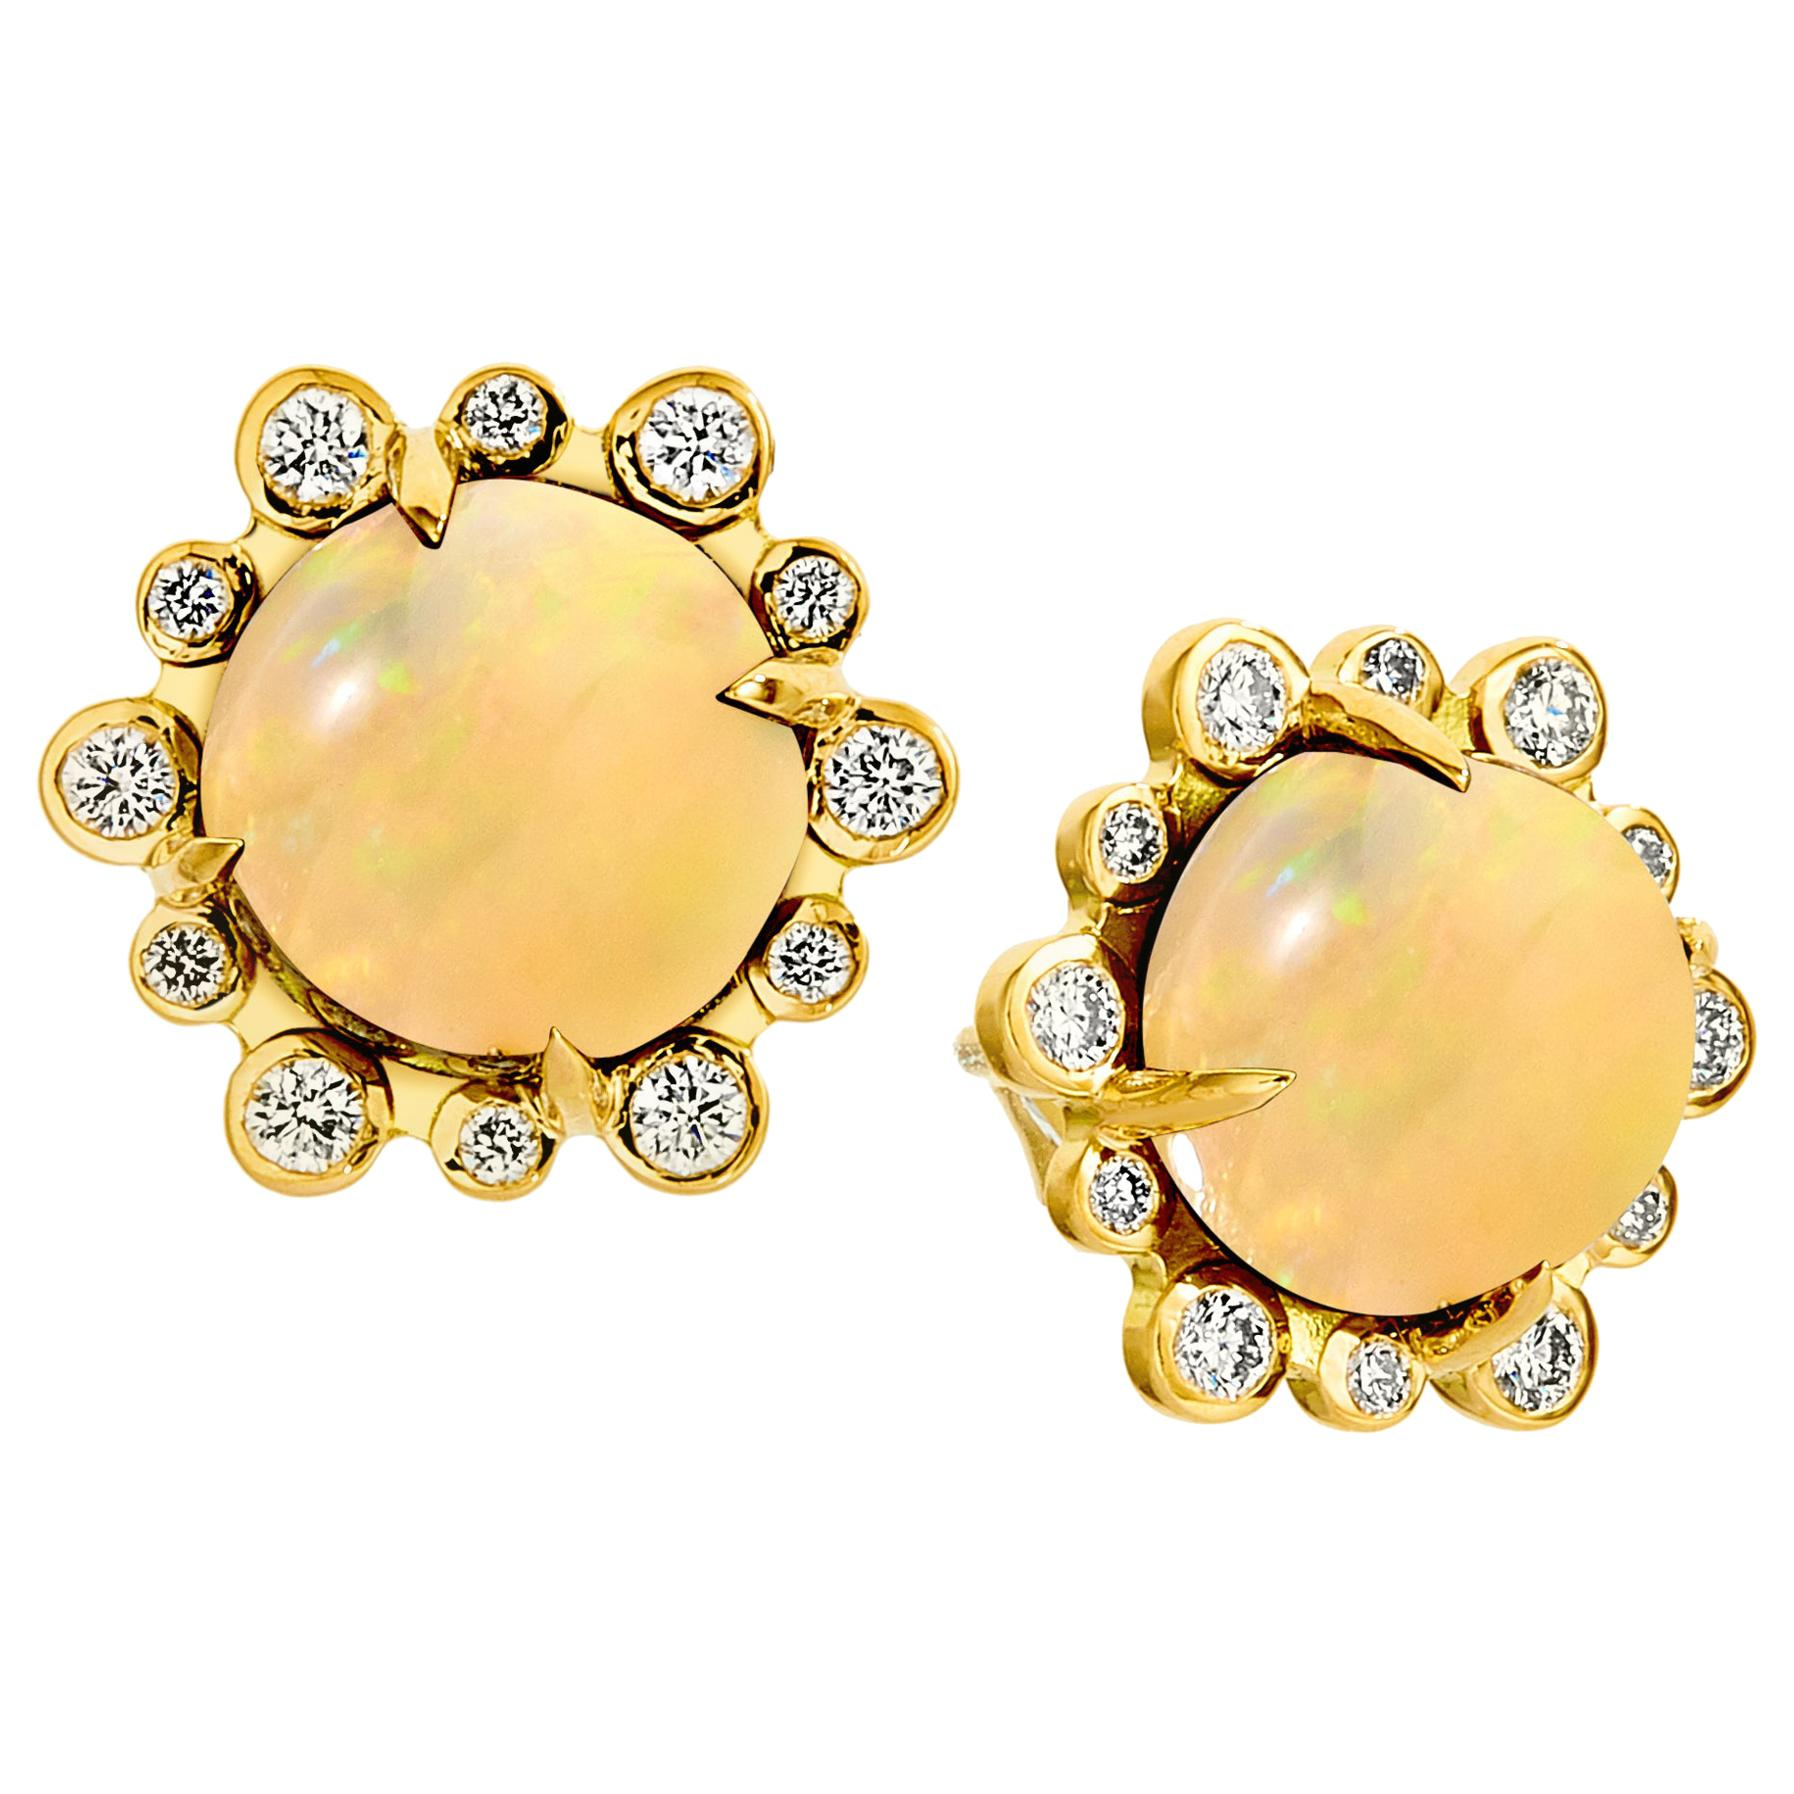 Syna Yellow Gold Opal Earrings with Champagne Diamonds